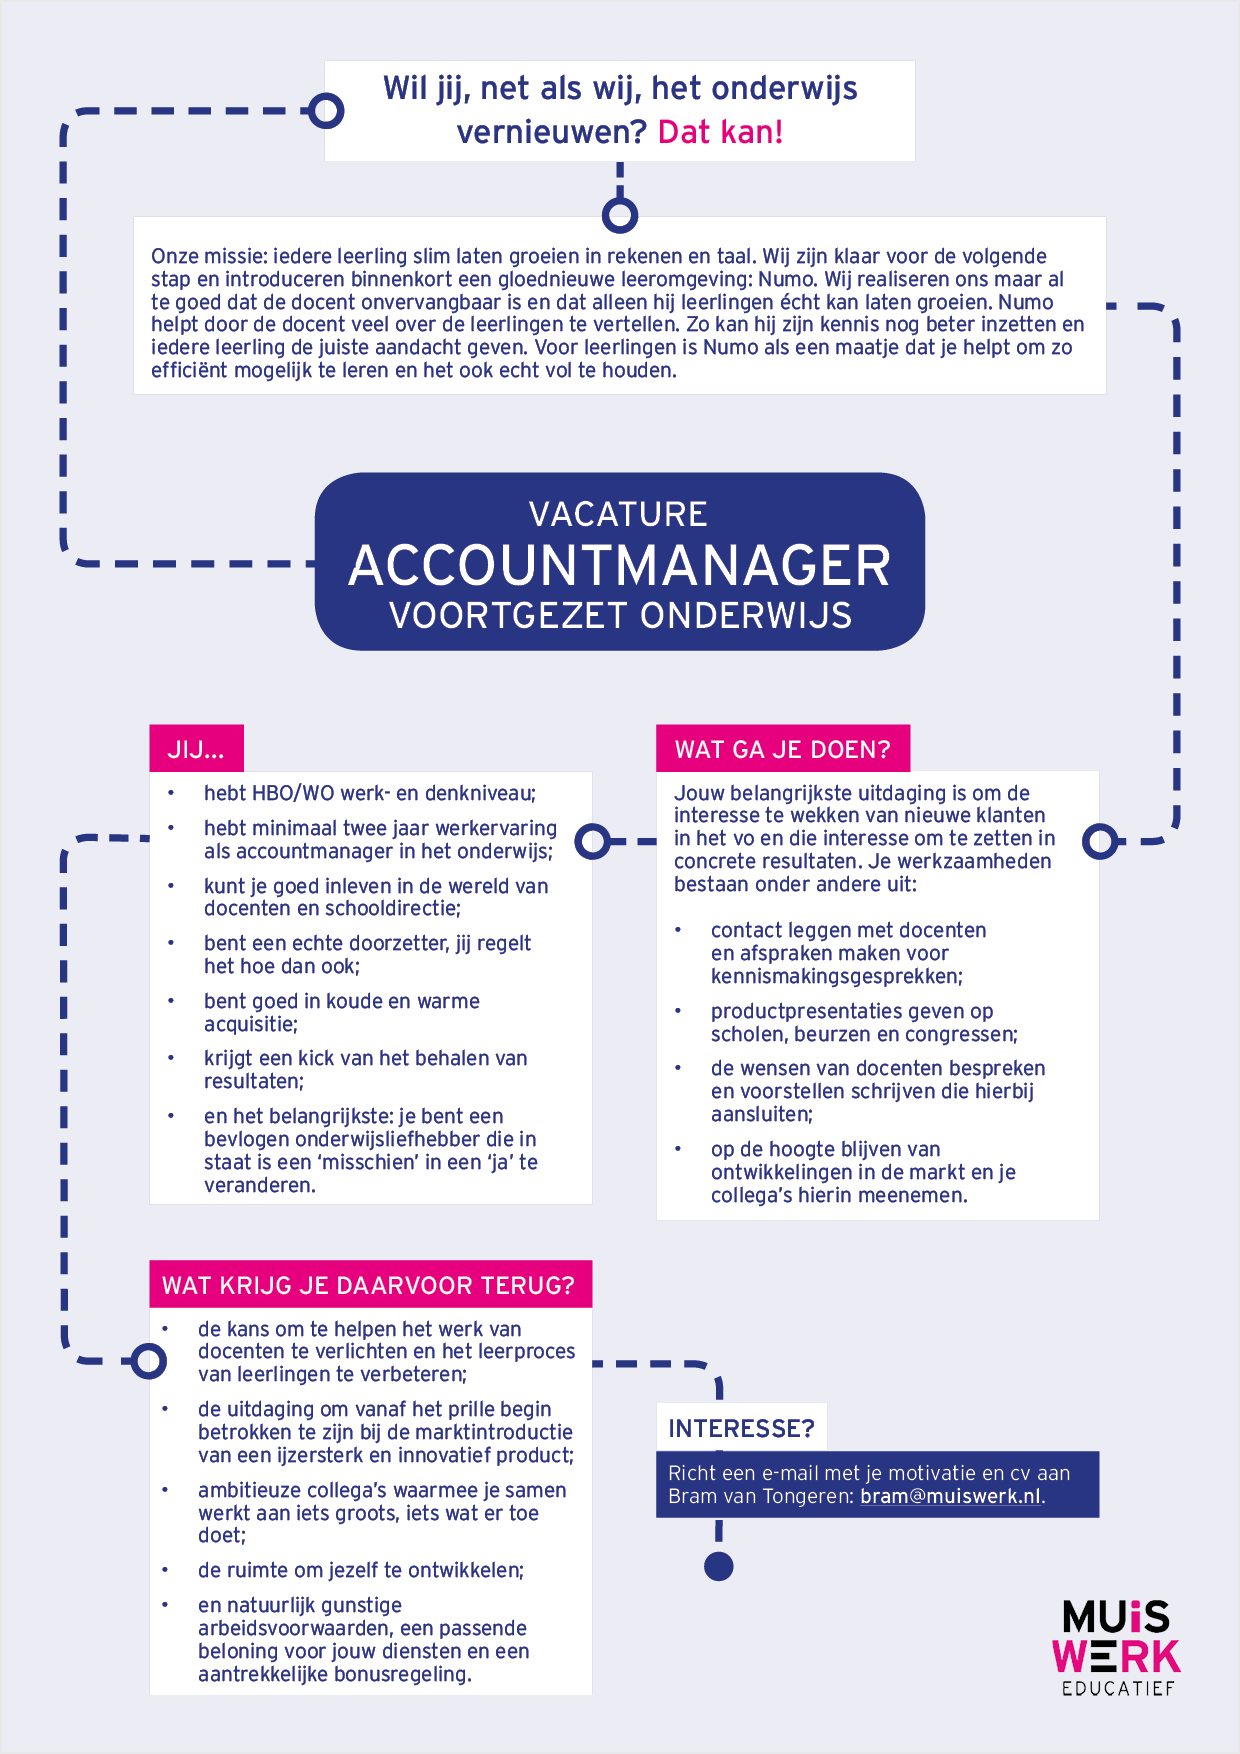 Vacature accountmanager